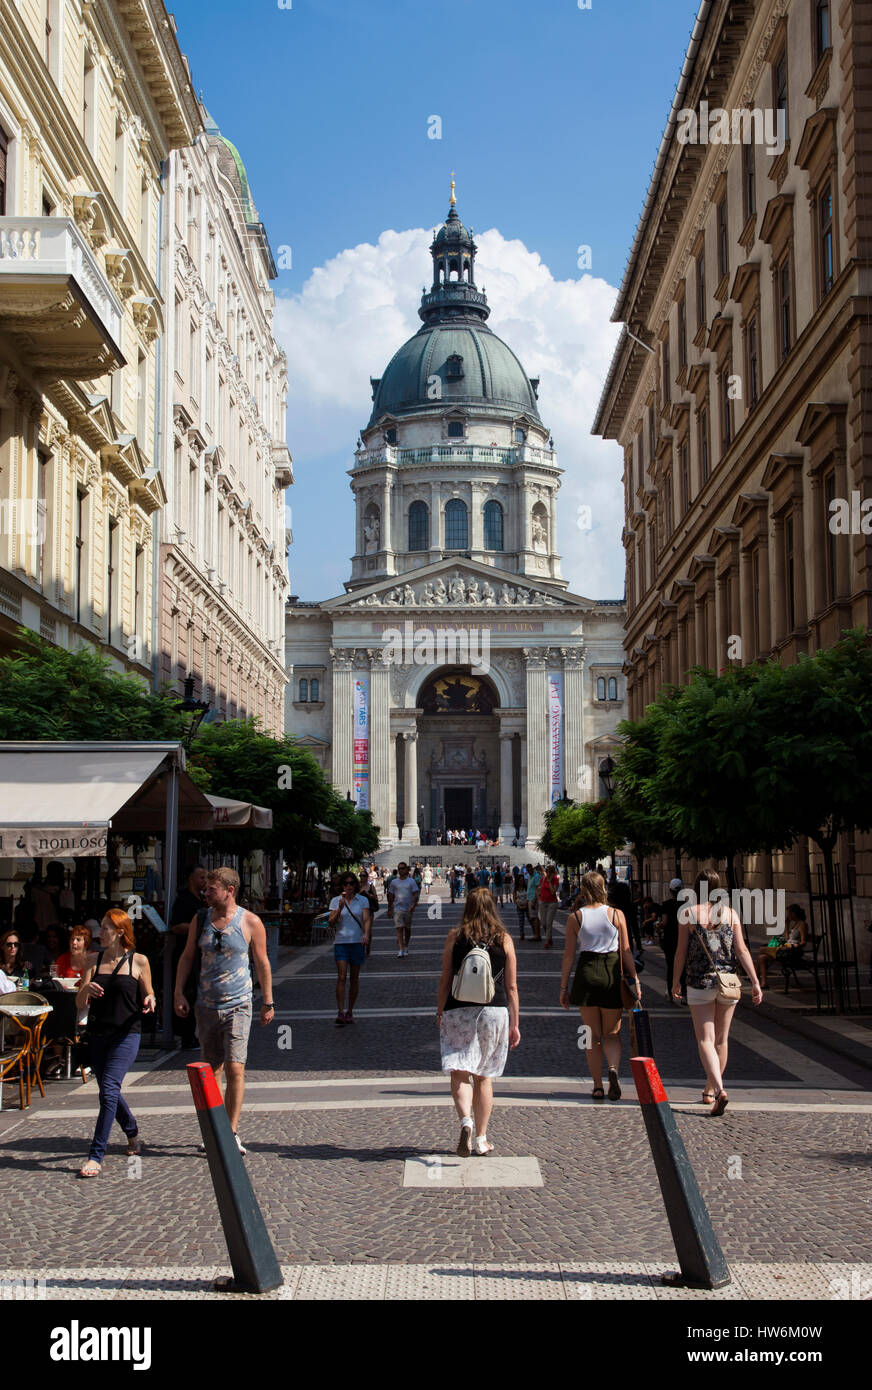 Tourists walking in Zrinyi street toward St Stephen basilica in the center of Budapest Stock Photo